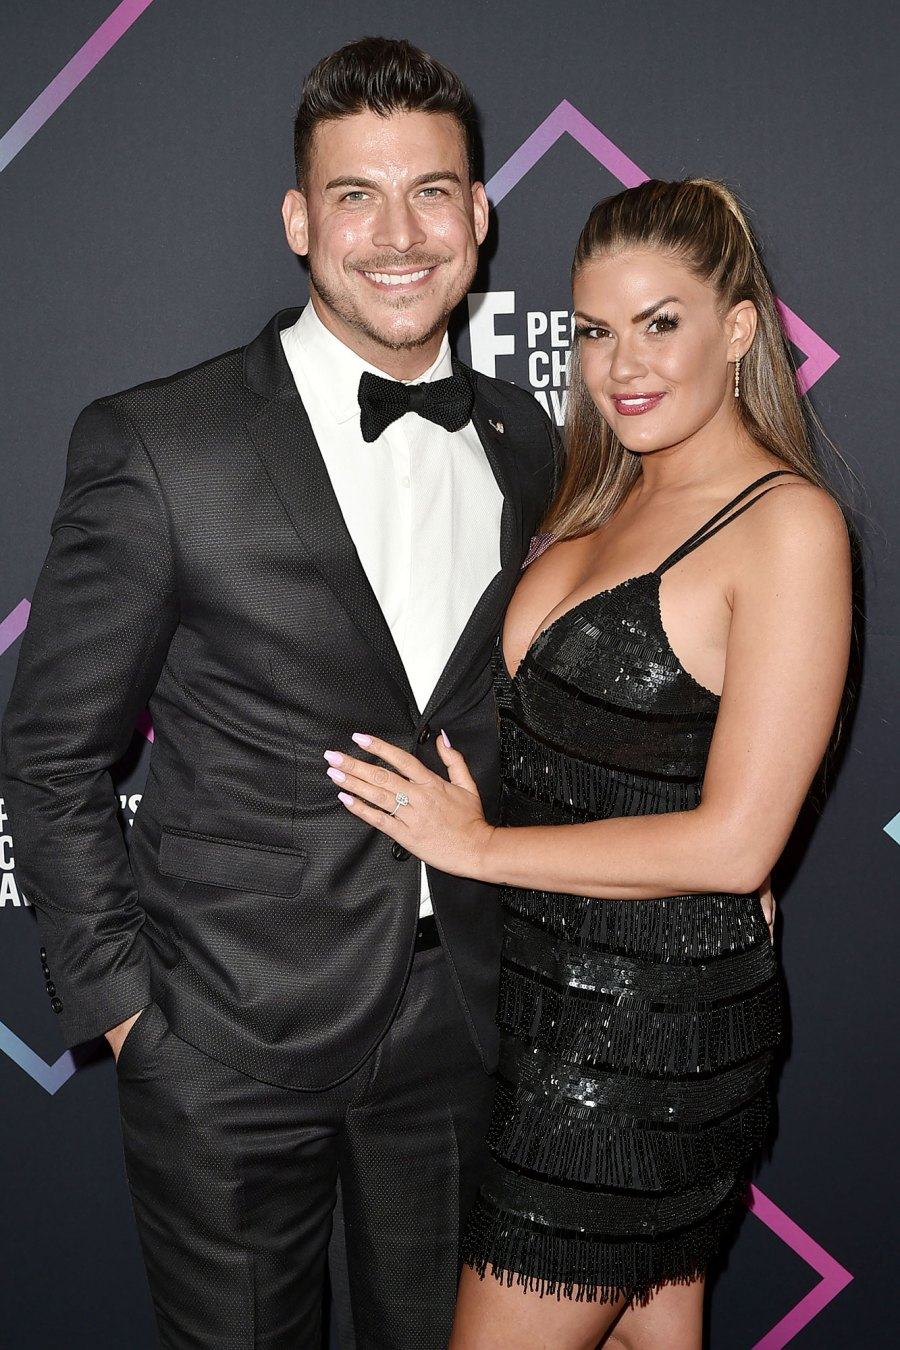 Brittany Cartwright and Jax Taylor Celebrate Her 30th in Mexico